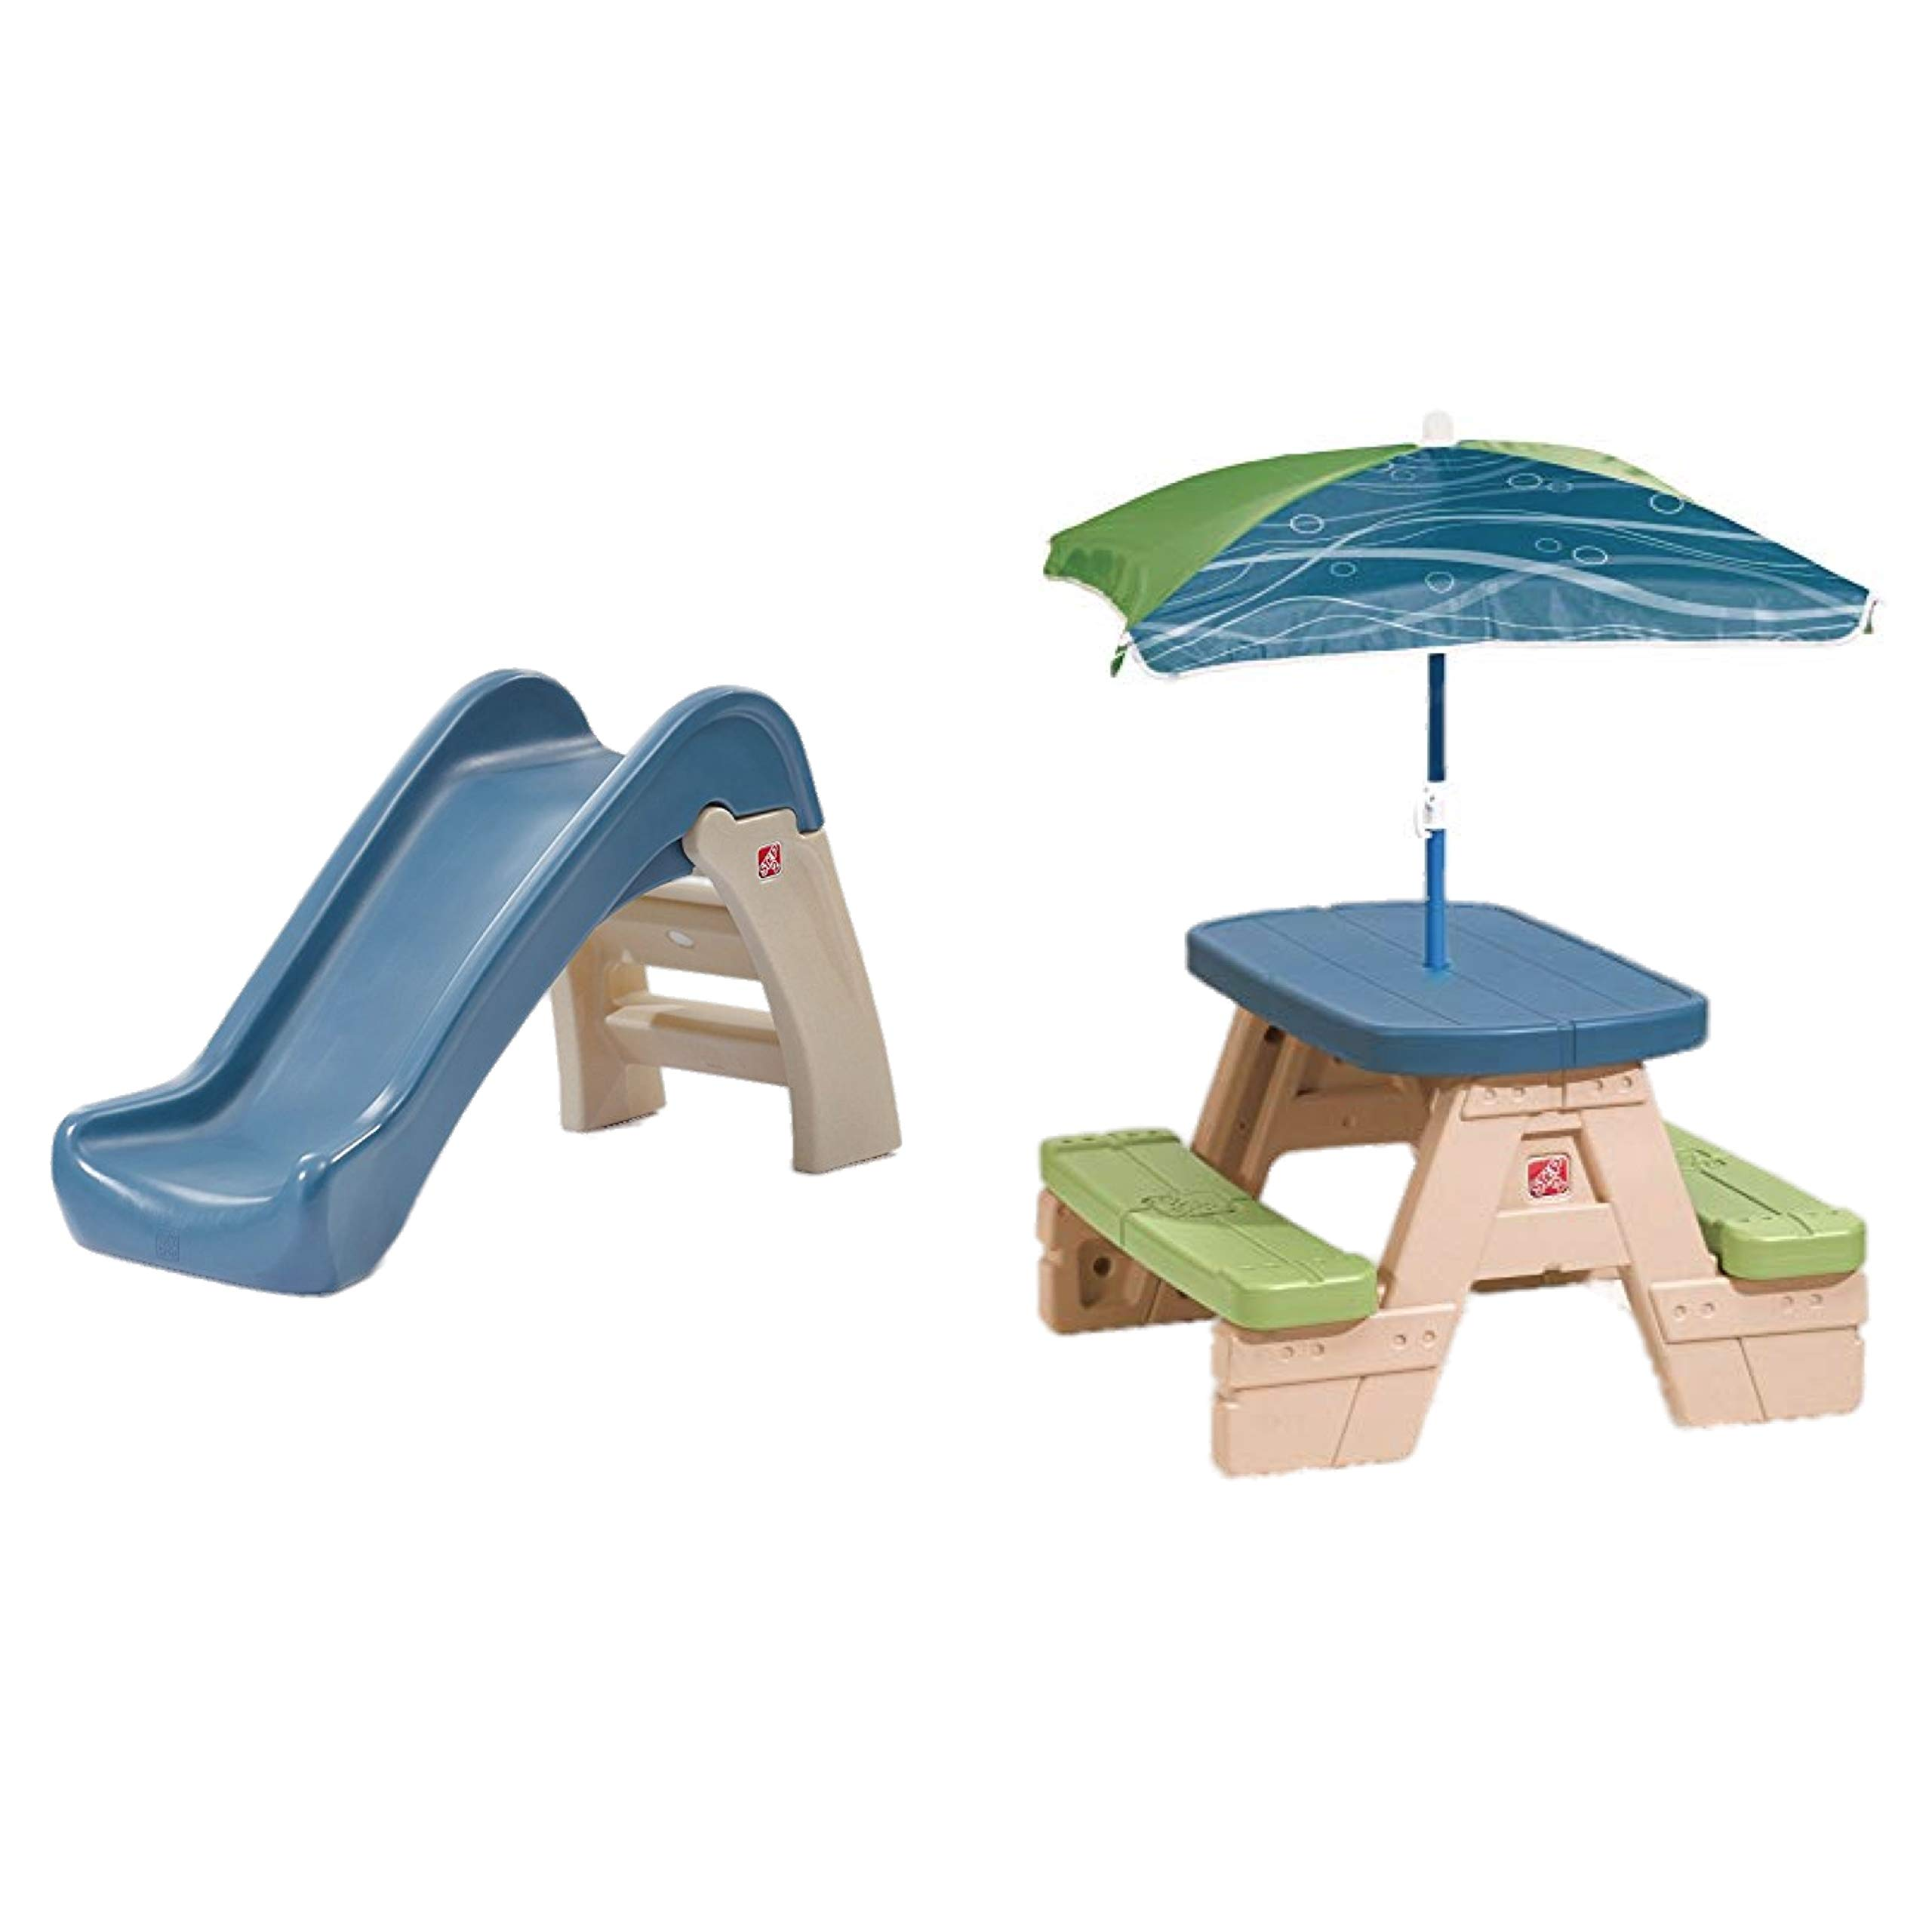 Bundle Includes 2 Items - Step2 Play and Fold Jr. Kids Slide and Step2 Sit and Play Kids Picnic Table with Umbrella by Step2 and Step2 (Image #1)